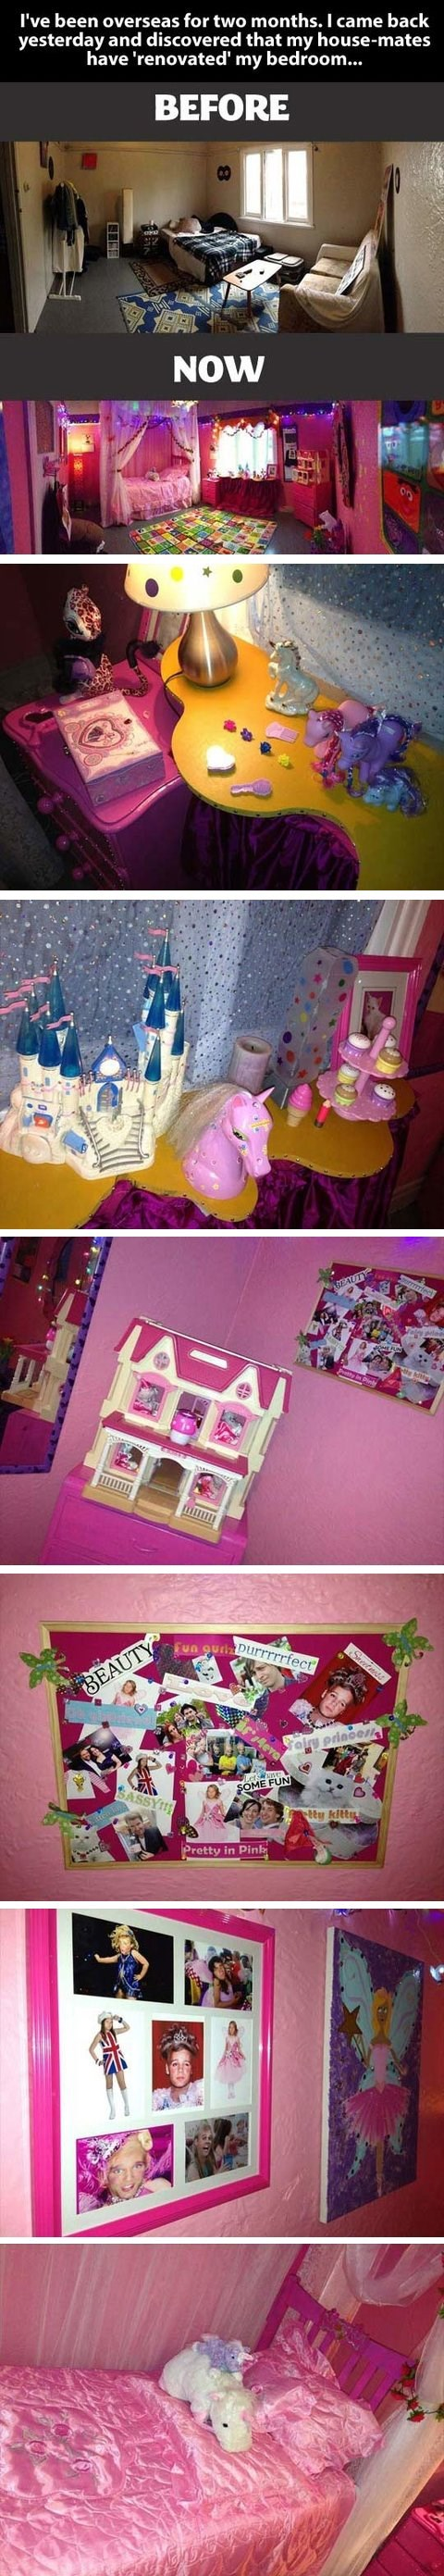 pretty princess room redecorating roommate pranks roommates - 7792942592